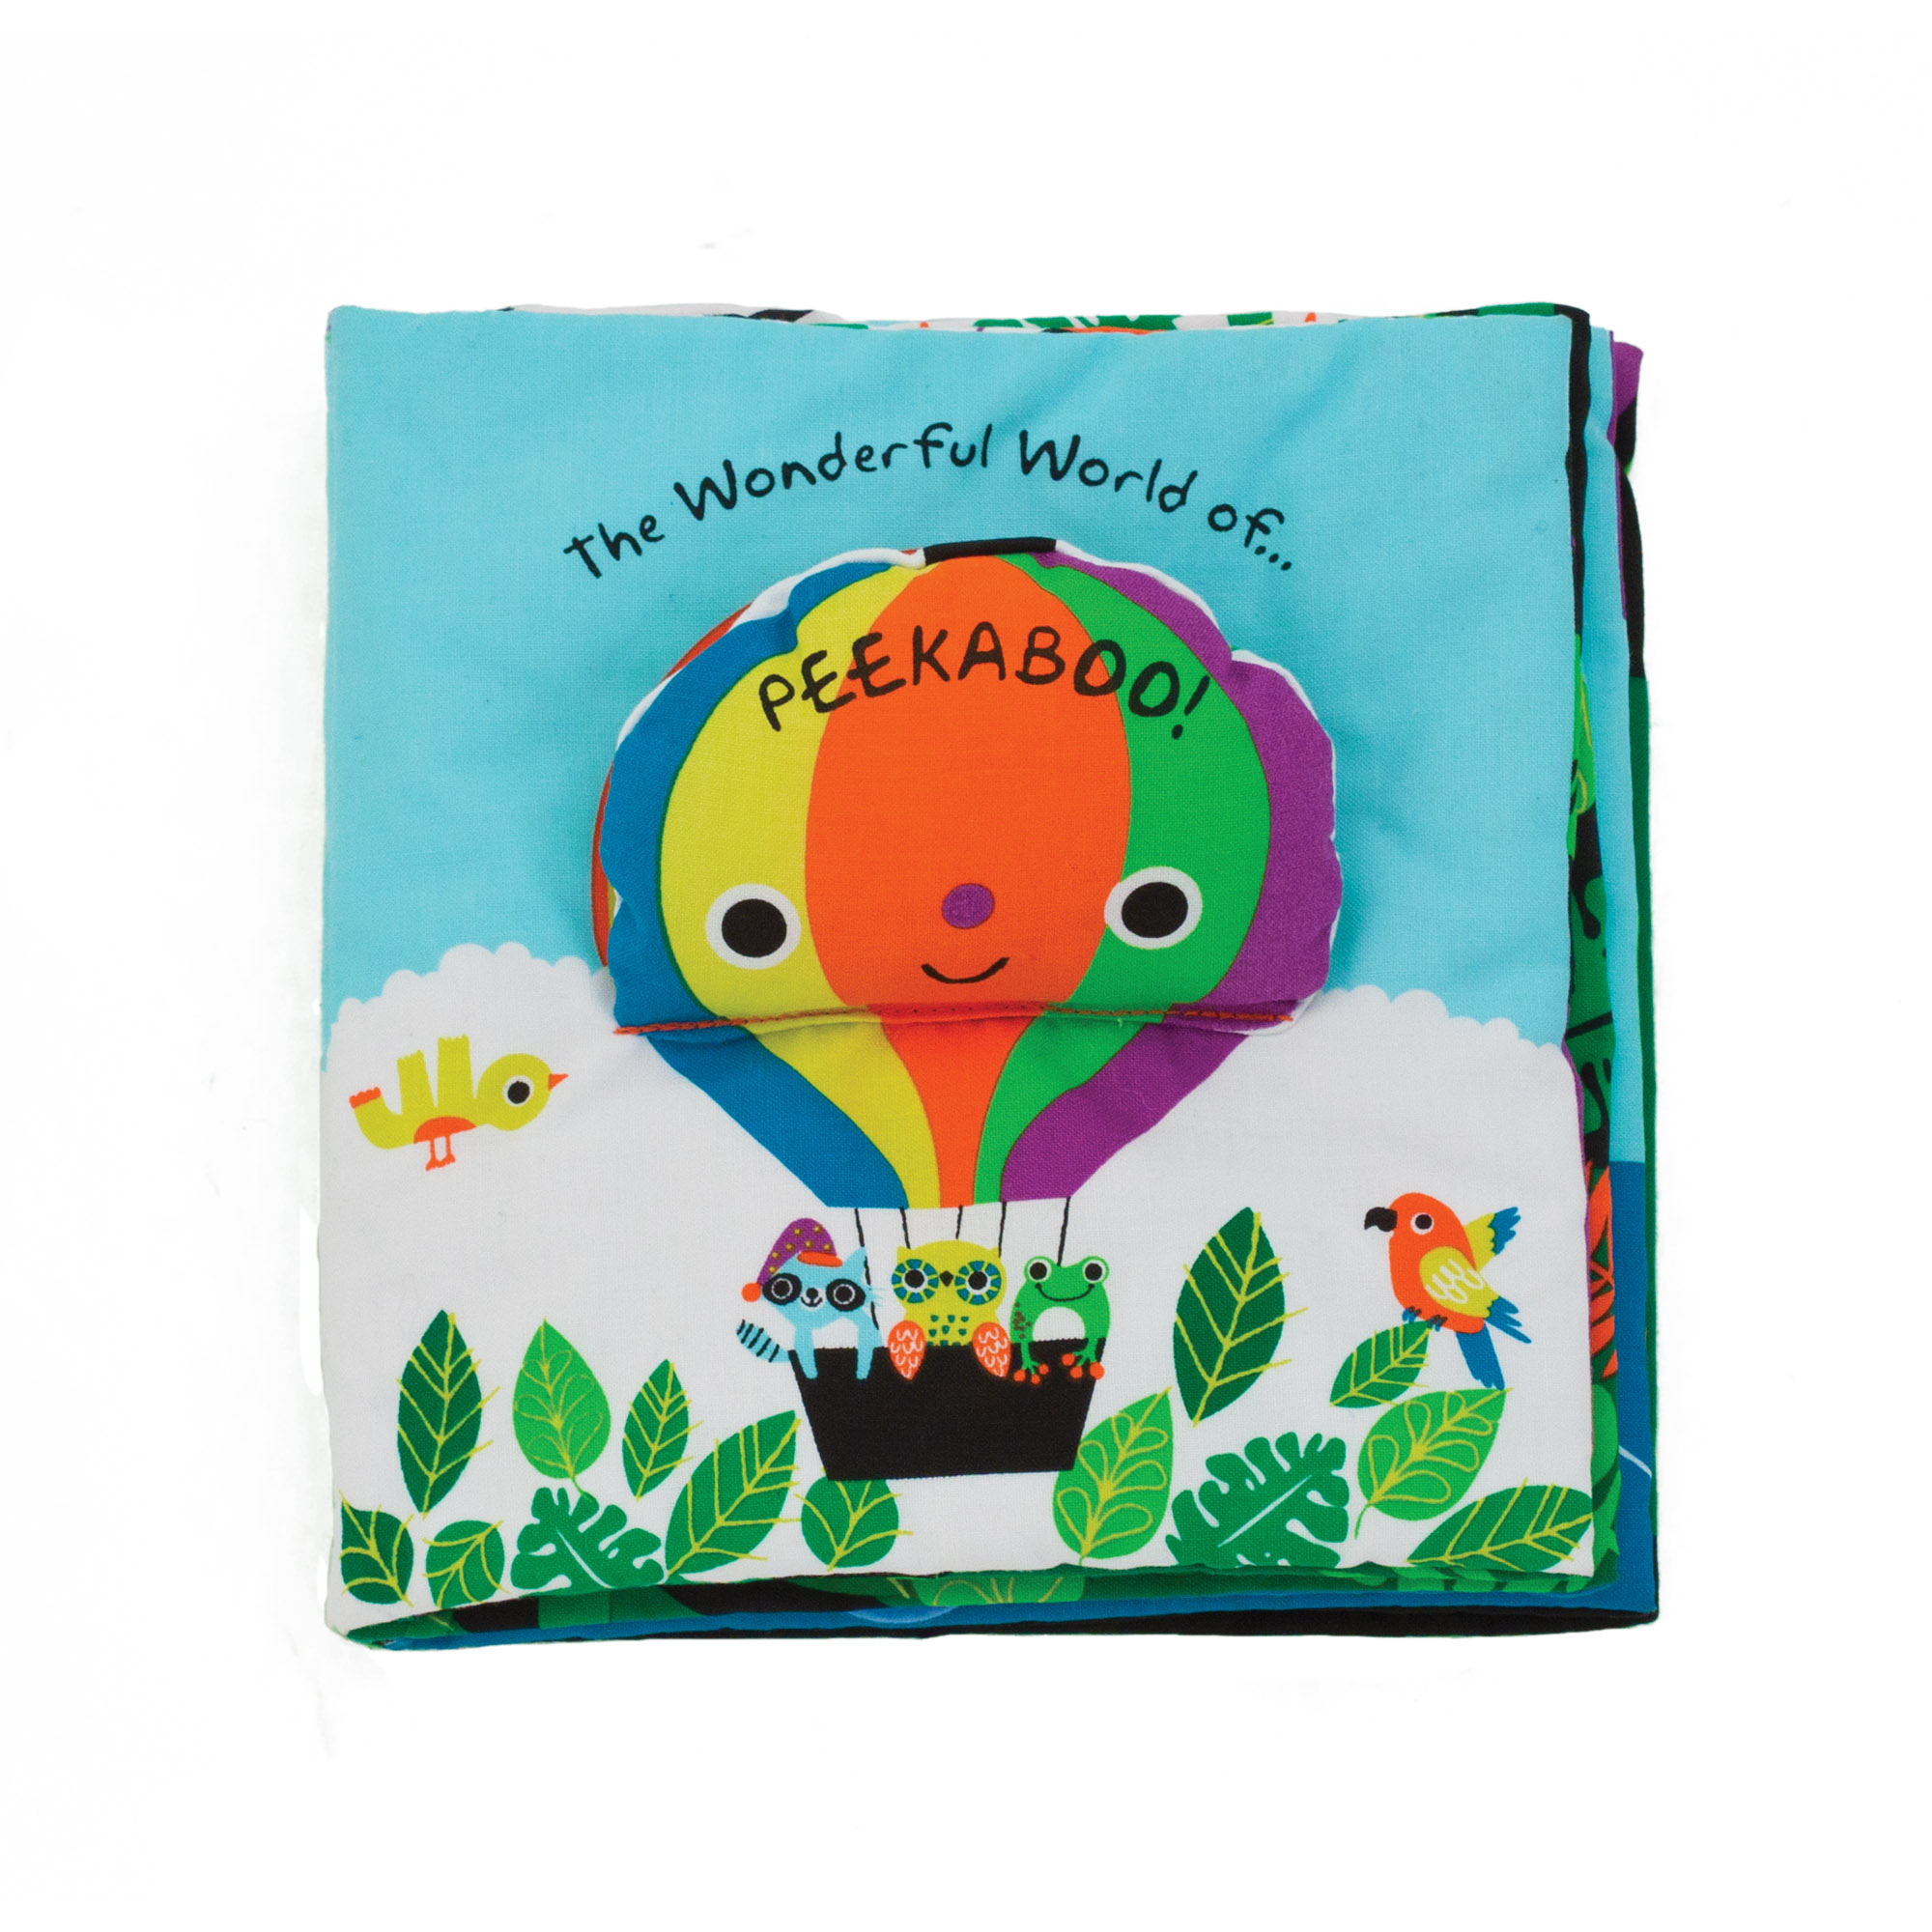 Playing peekaboo is more fun than ever with this crinkling, squeaking, lift-the-flap cloth book filled with jungle animals, flying friends, and more. Take a peek to see what you can find! Melissa & Doug K's Kids cloth books are packed with low-tech, high-impact novelties, and durably constructed to last through story time, playtime, and the washing machine, too!